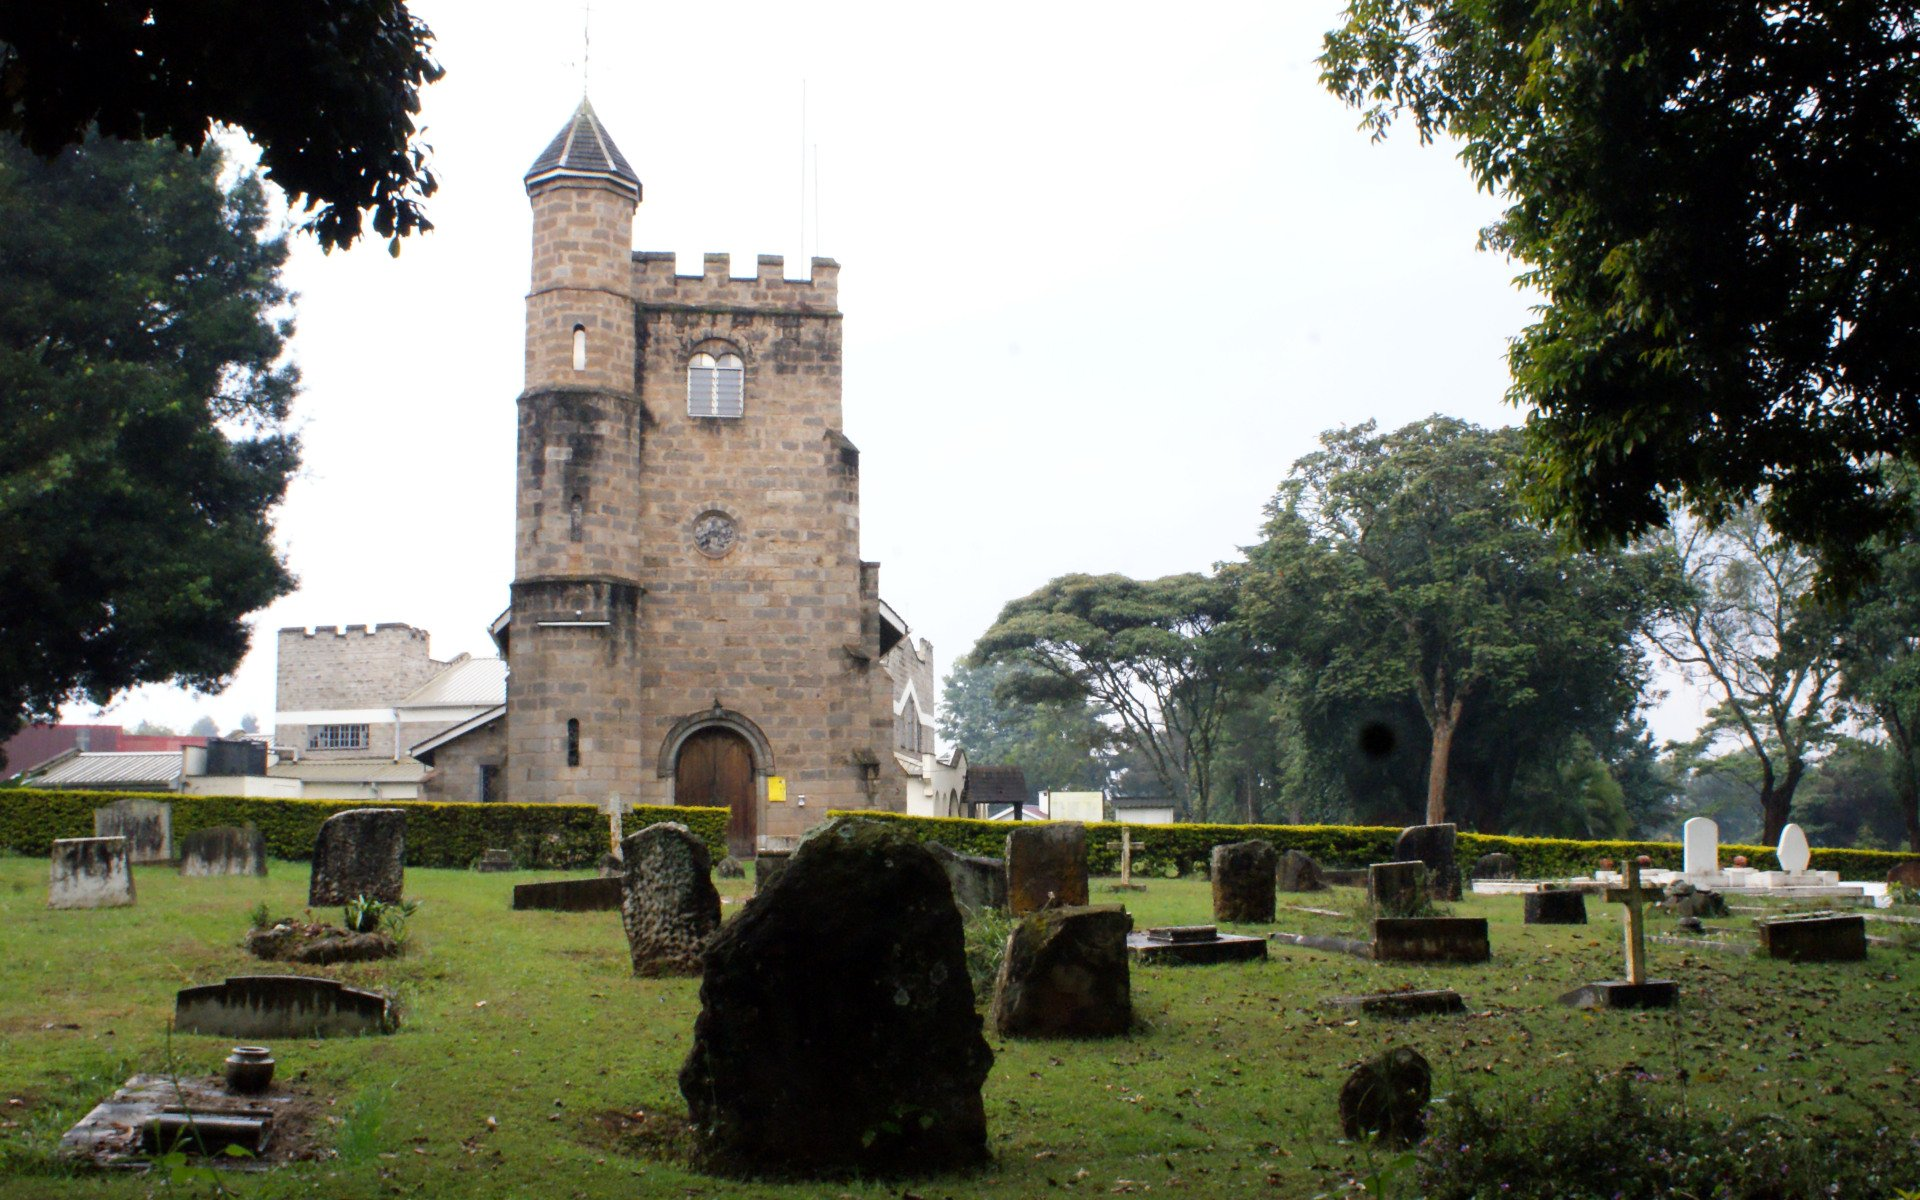 A well-kept graveyard stands next to the All Saints Church Limuru, a testimony to those bygone days when the cockney Pearly Kings and Queens ruled and left the countryside of Tigoni. Some noticeable graves include those of the Leakey and McDonell family.